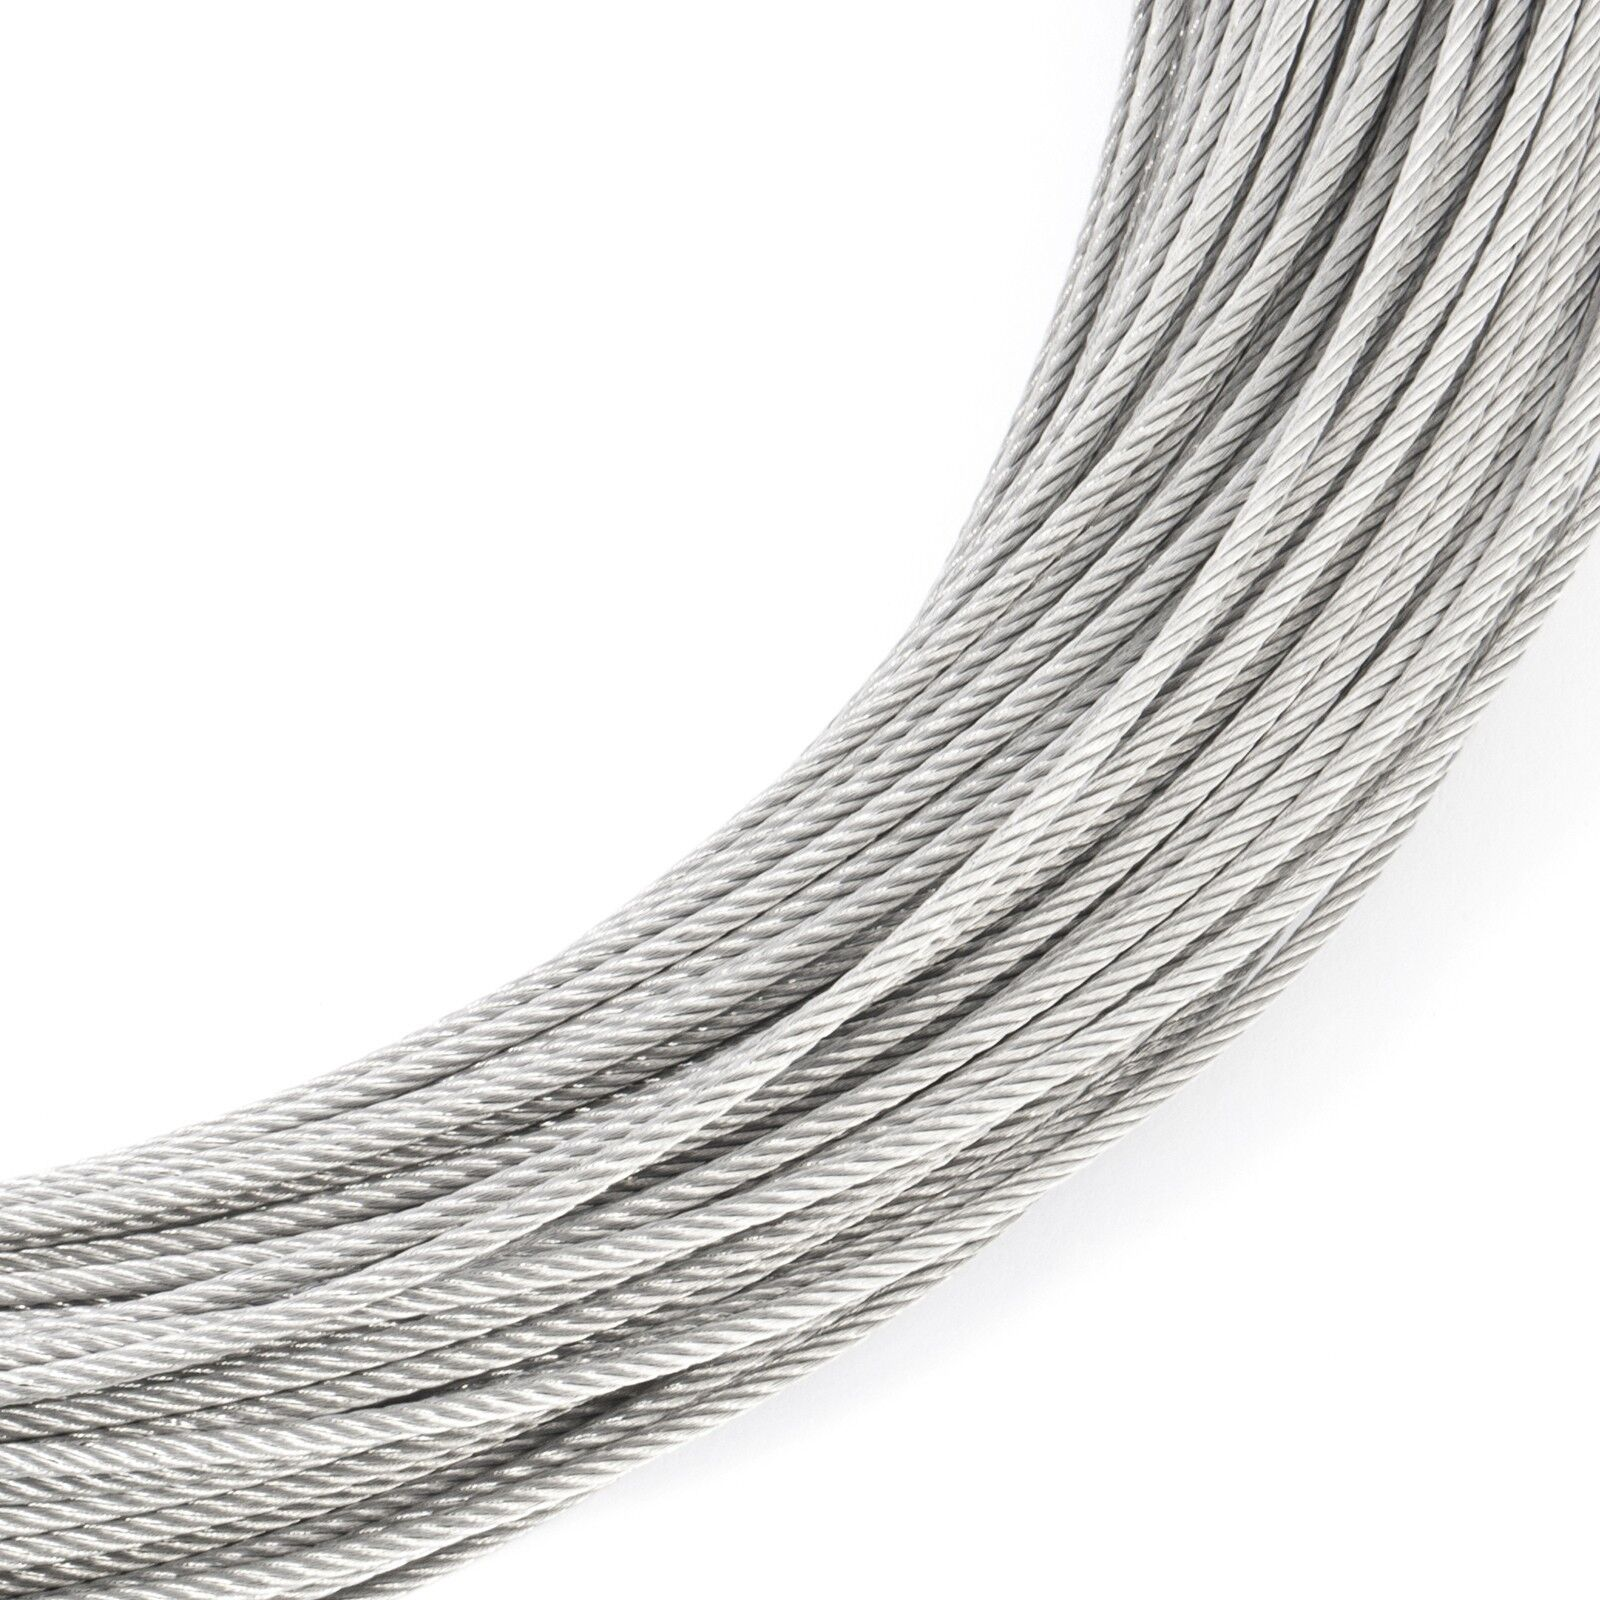 2mm STAINLESS STEEL CABLES stranded wire rope weaved cord V4A metal industry